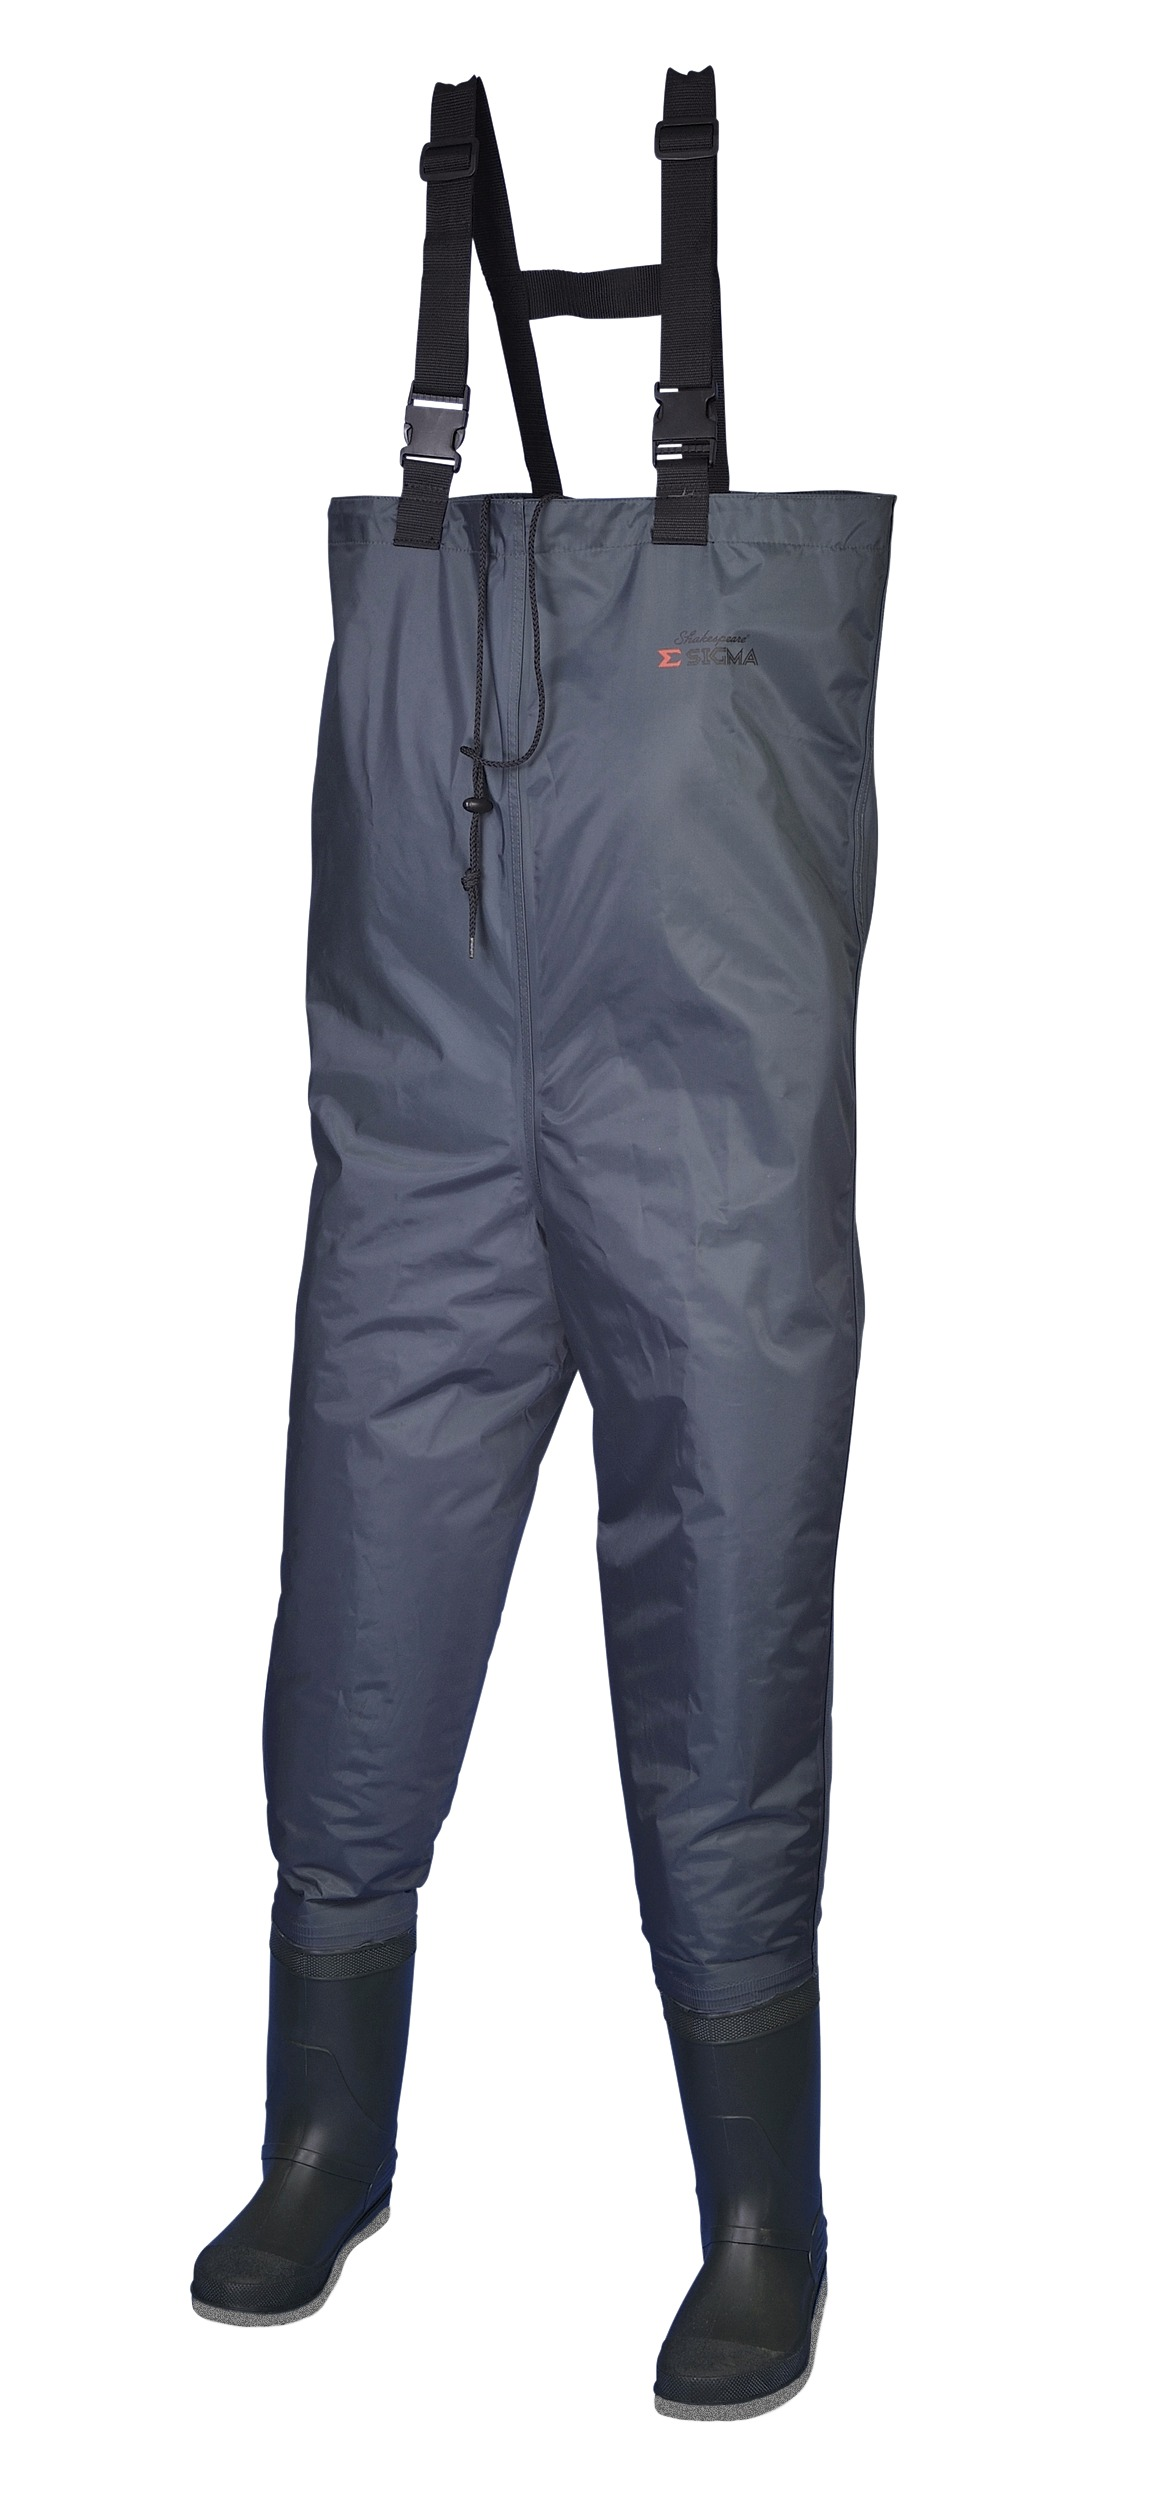 Shakespeare sigma nylon chest waders felt sole glasgow for Chest waders for fishing